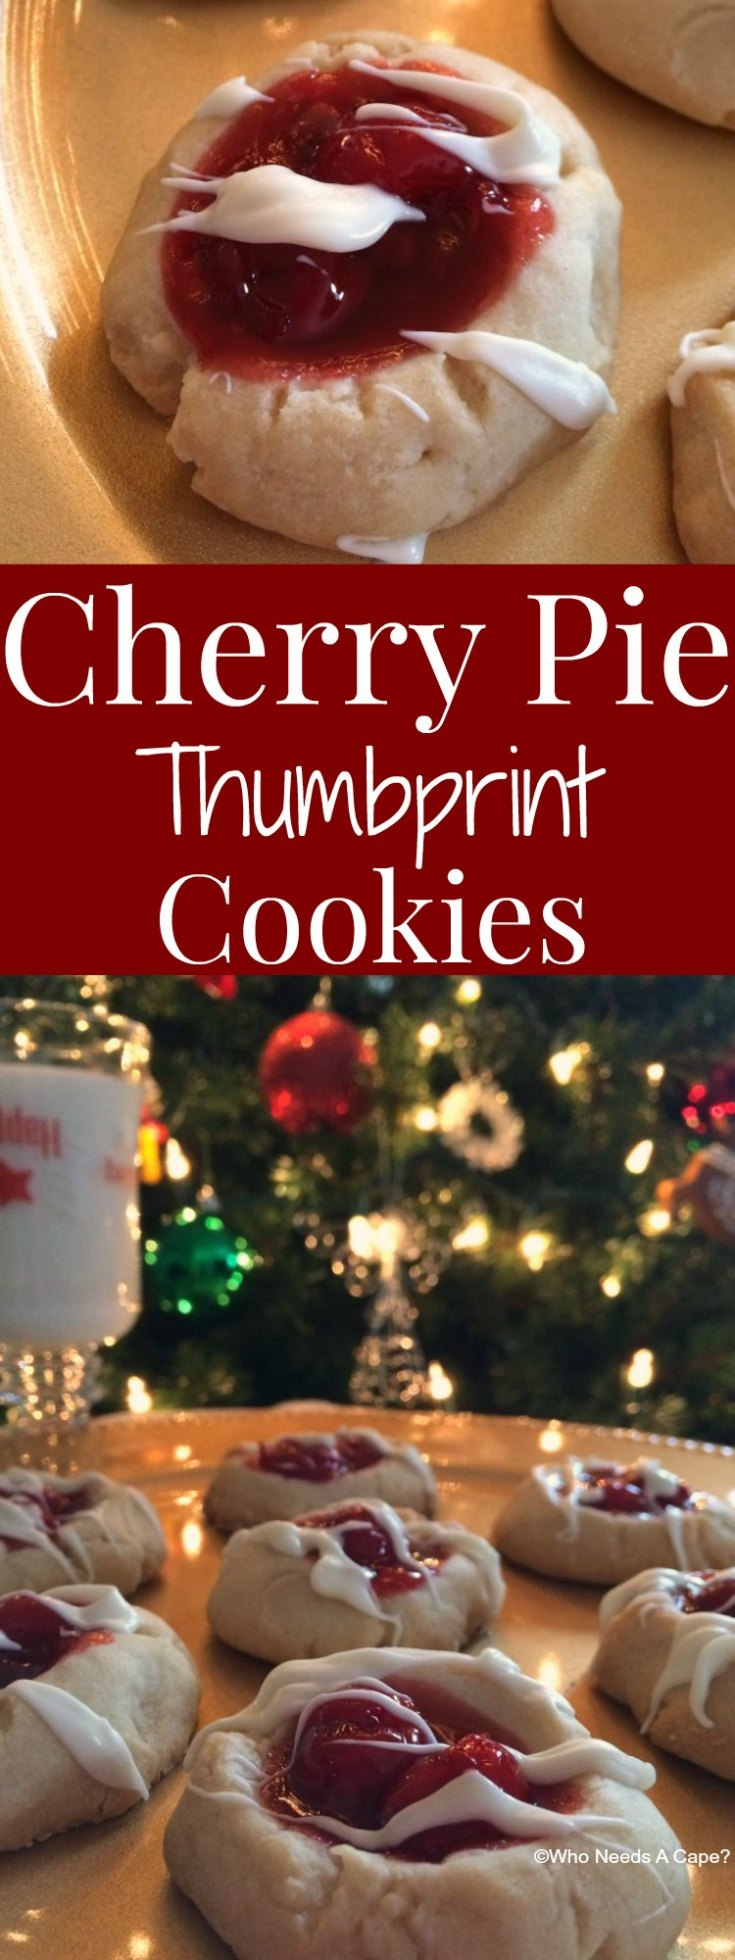 Cherry Pie Thumbprint Cookies are scrumptious! A shortbread style cookie topped with Cherry Pie Filling & a drizzle of chocolate, the perfect holiday treat!